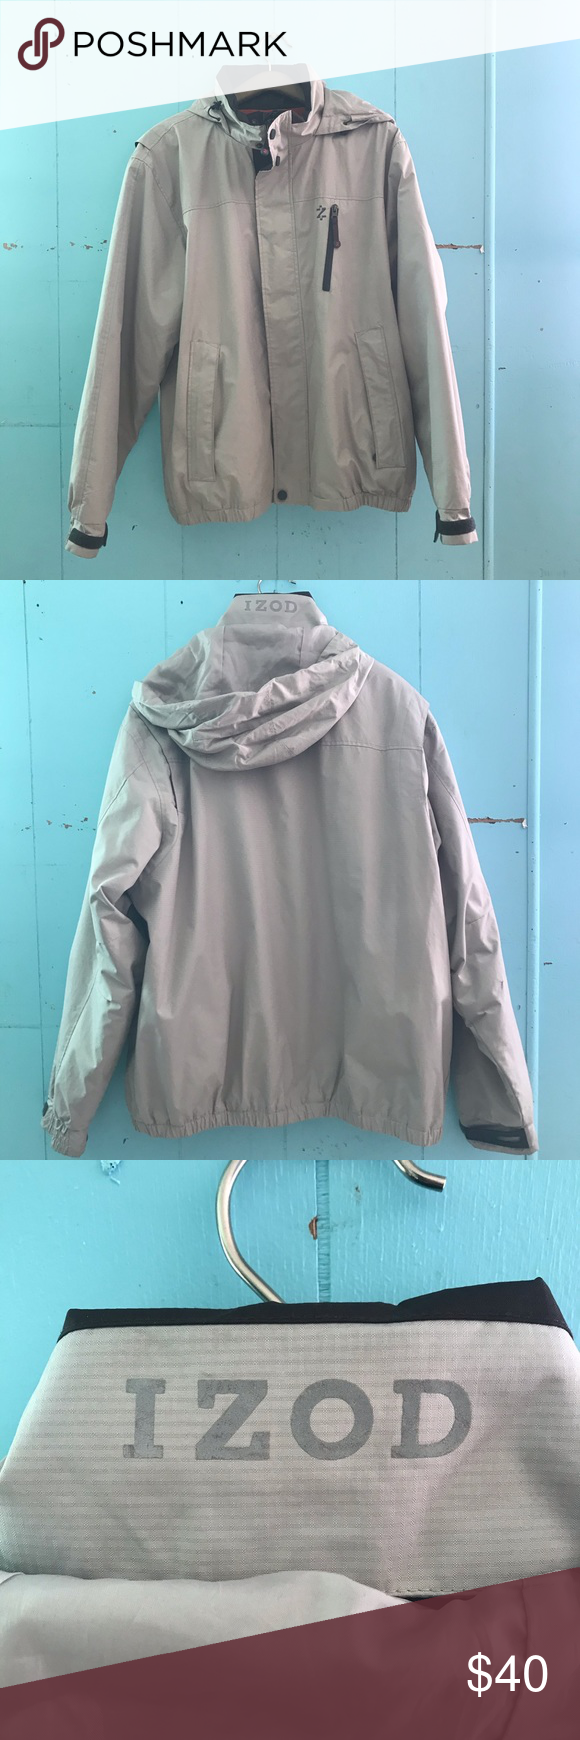 Izod Perform X Winter Jacket Item Is Heavy Good Condition Other Than The Stain On Sleeve Izod Jackets Coats Jackets Winter Jackets Clothes Design [ 1740 x 580 Pixel ]